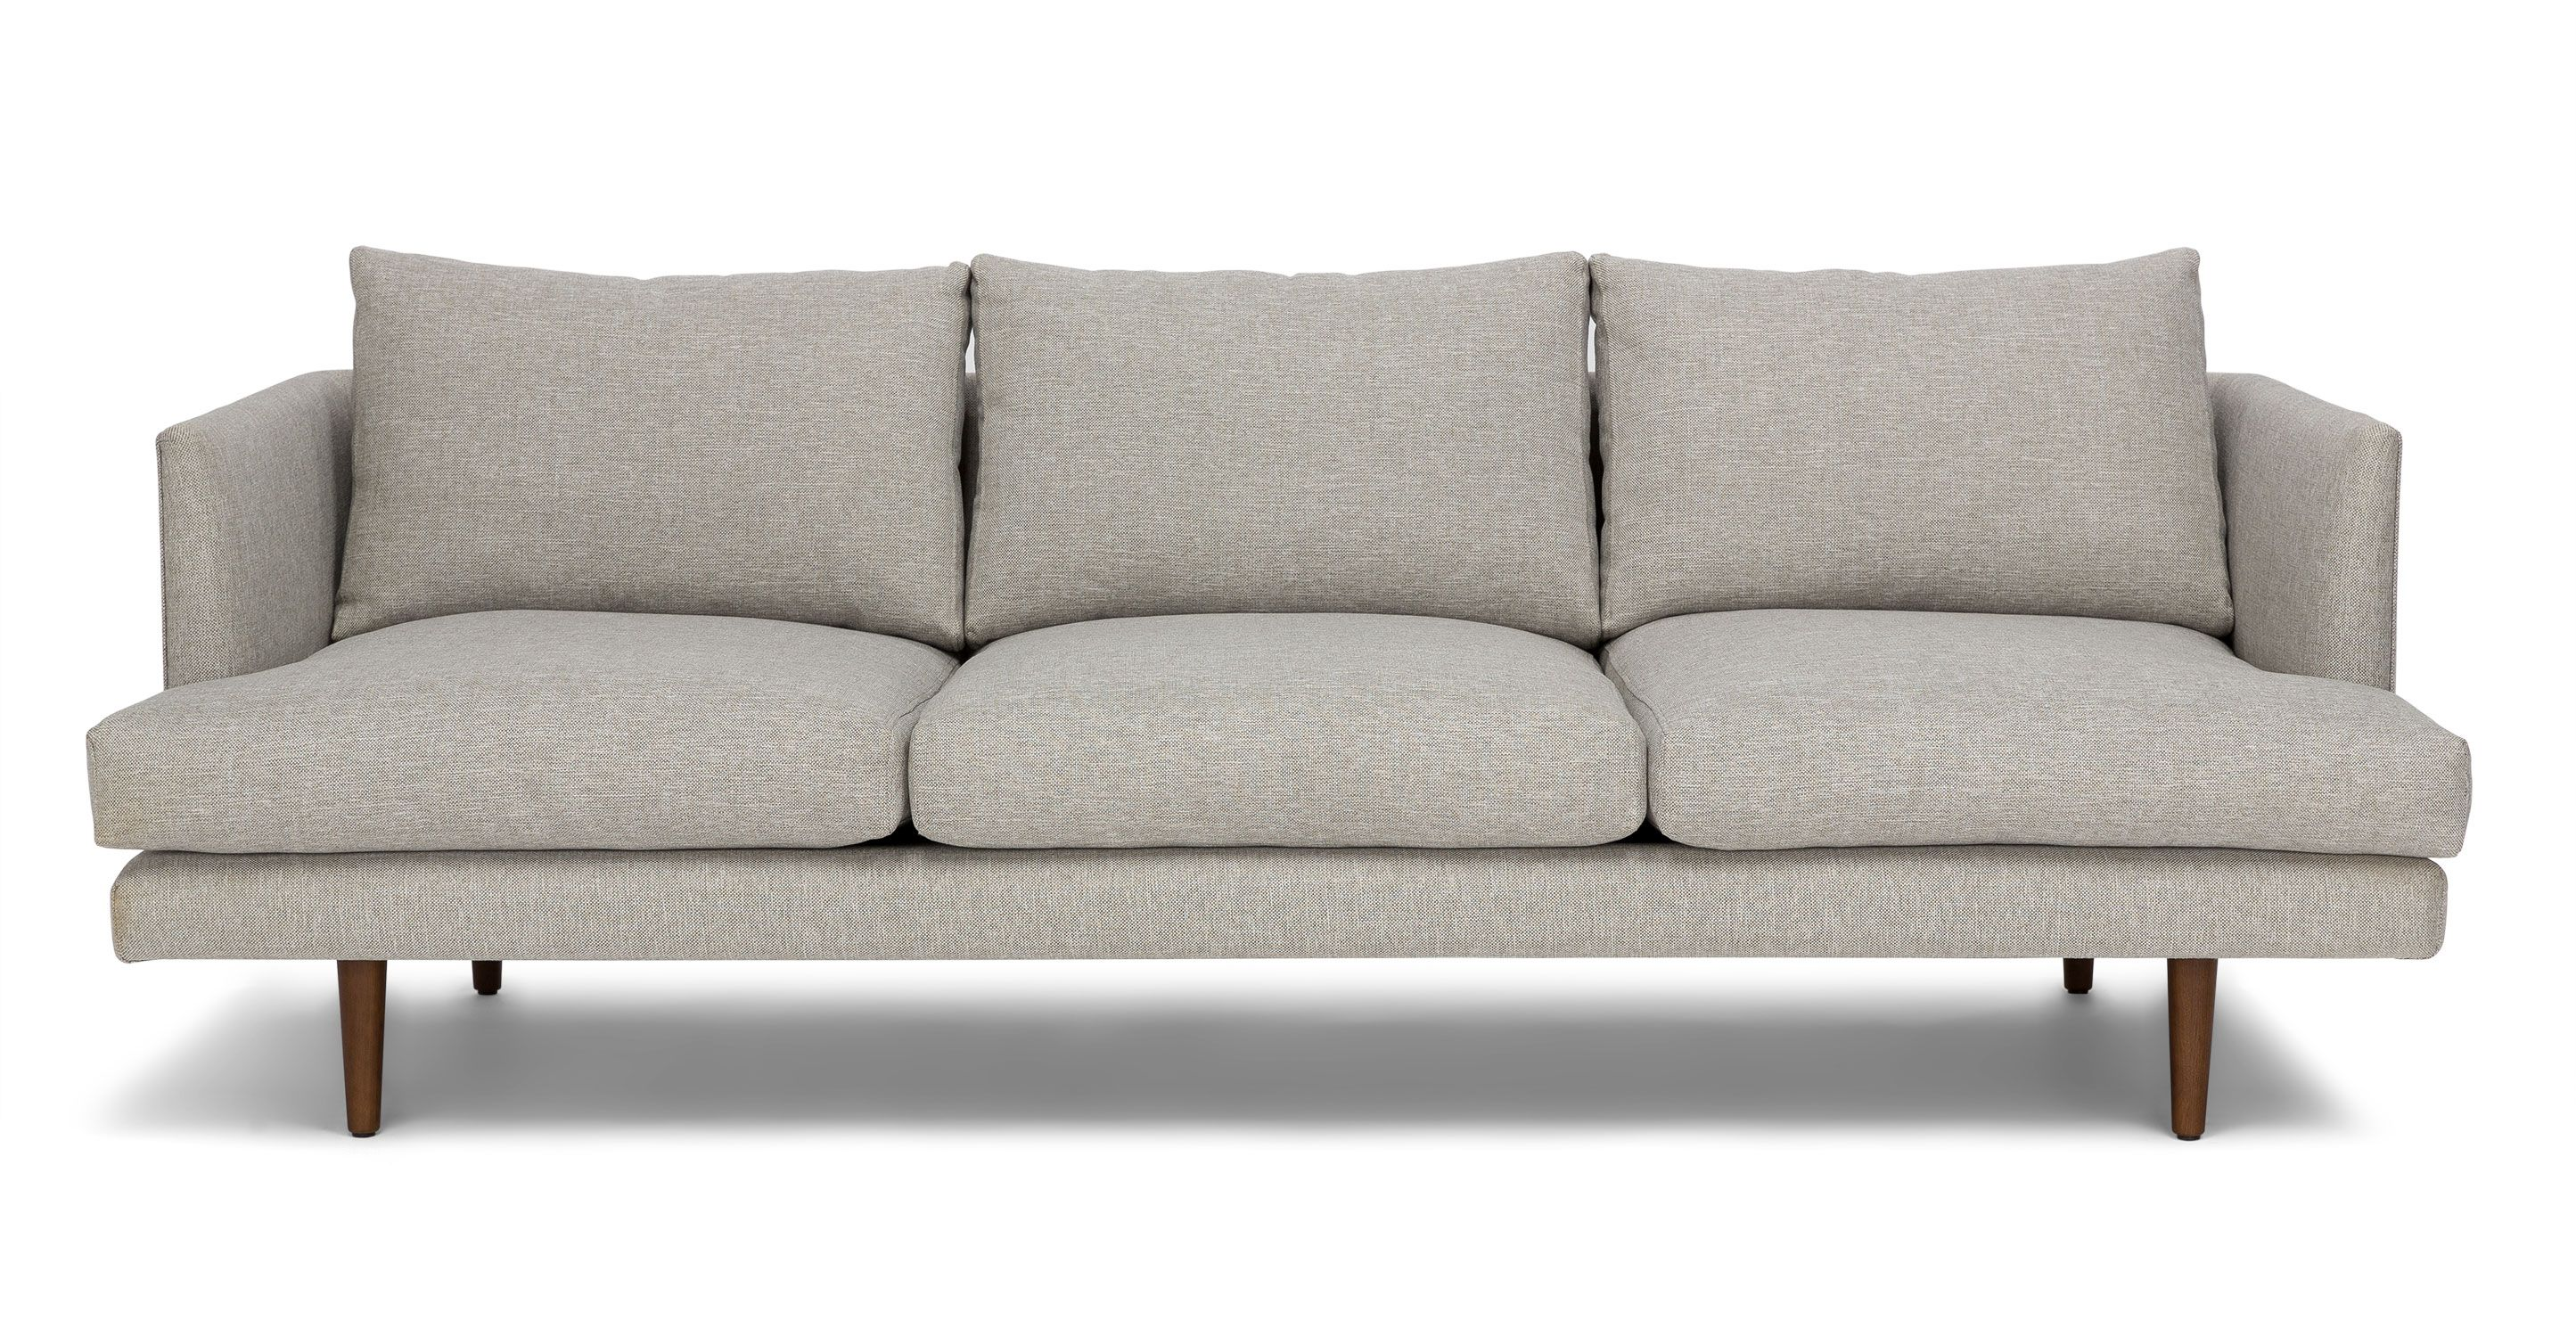 Burrard Seasalt Gray Sofa - Sofas - Article | Modern, Mid-Century and Scandinavian Furniture